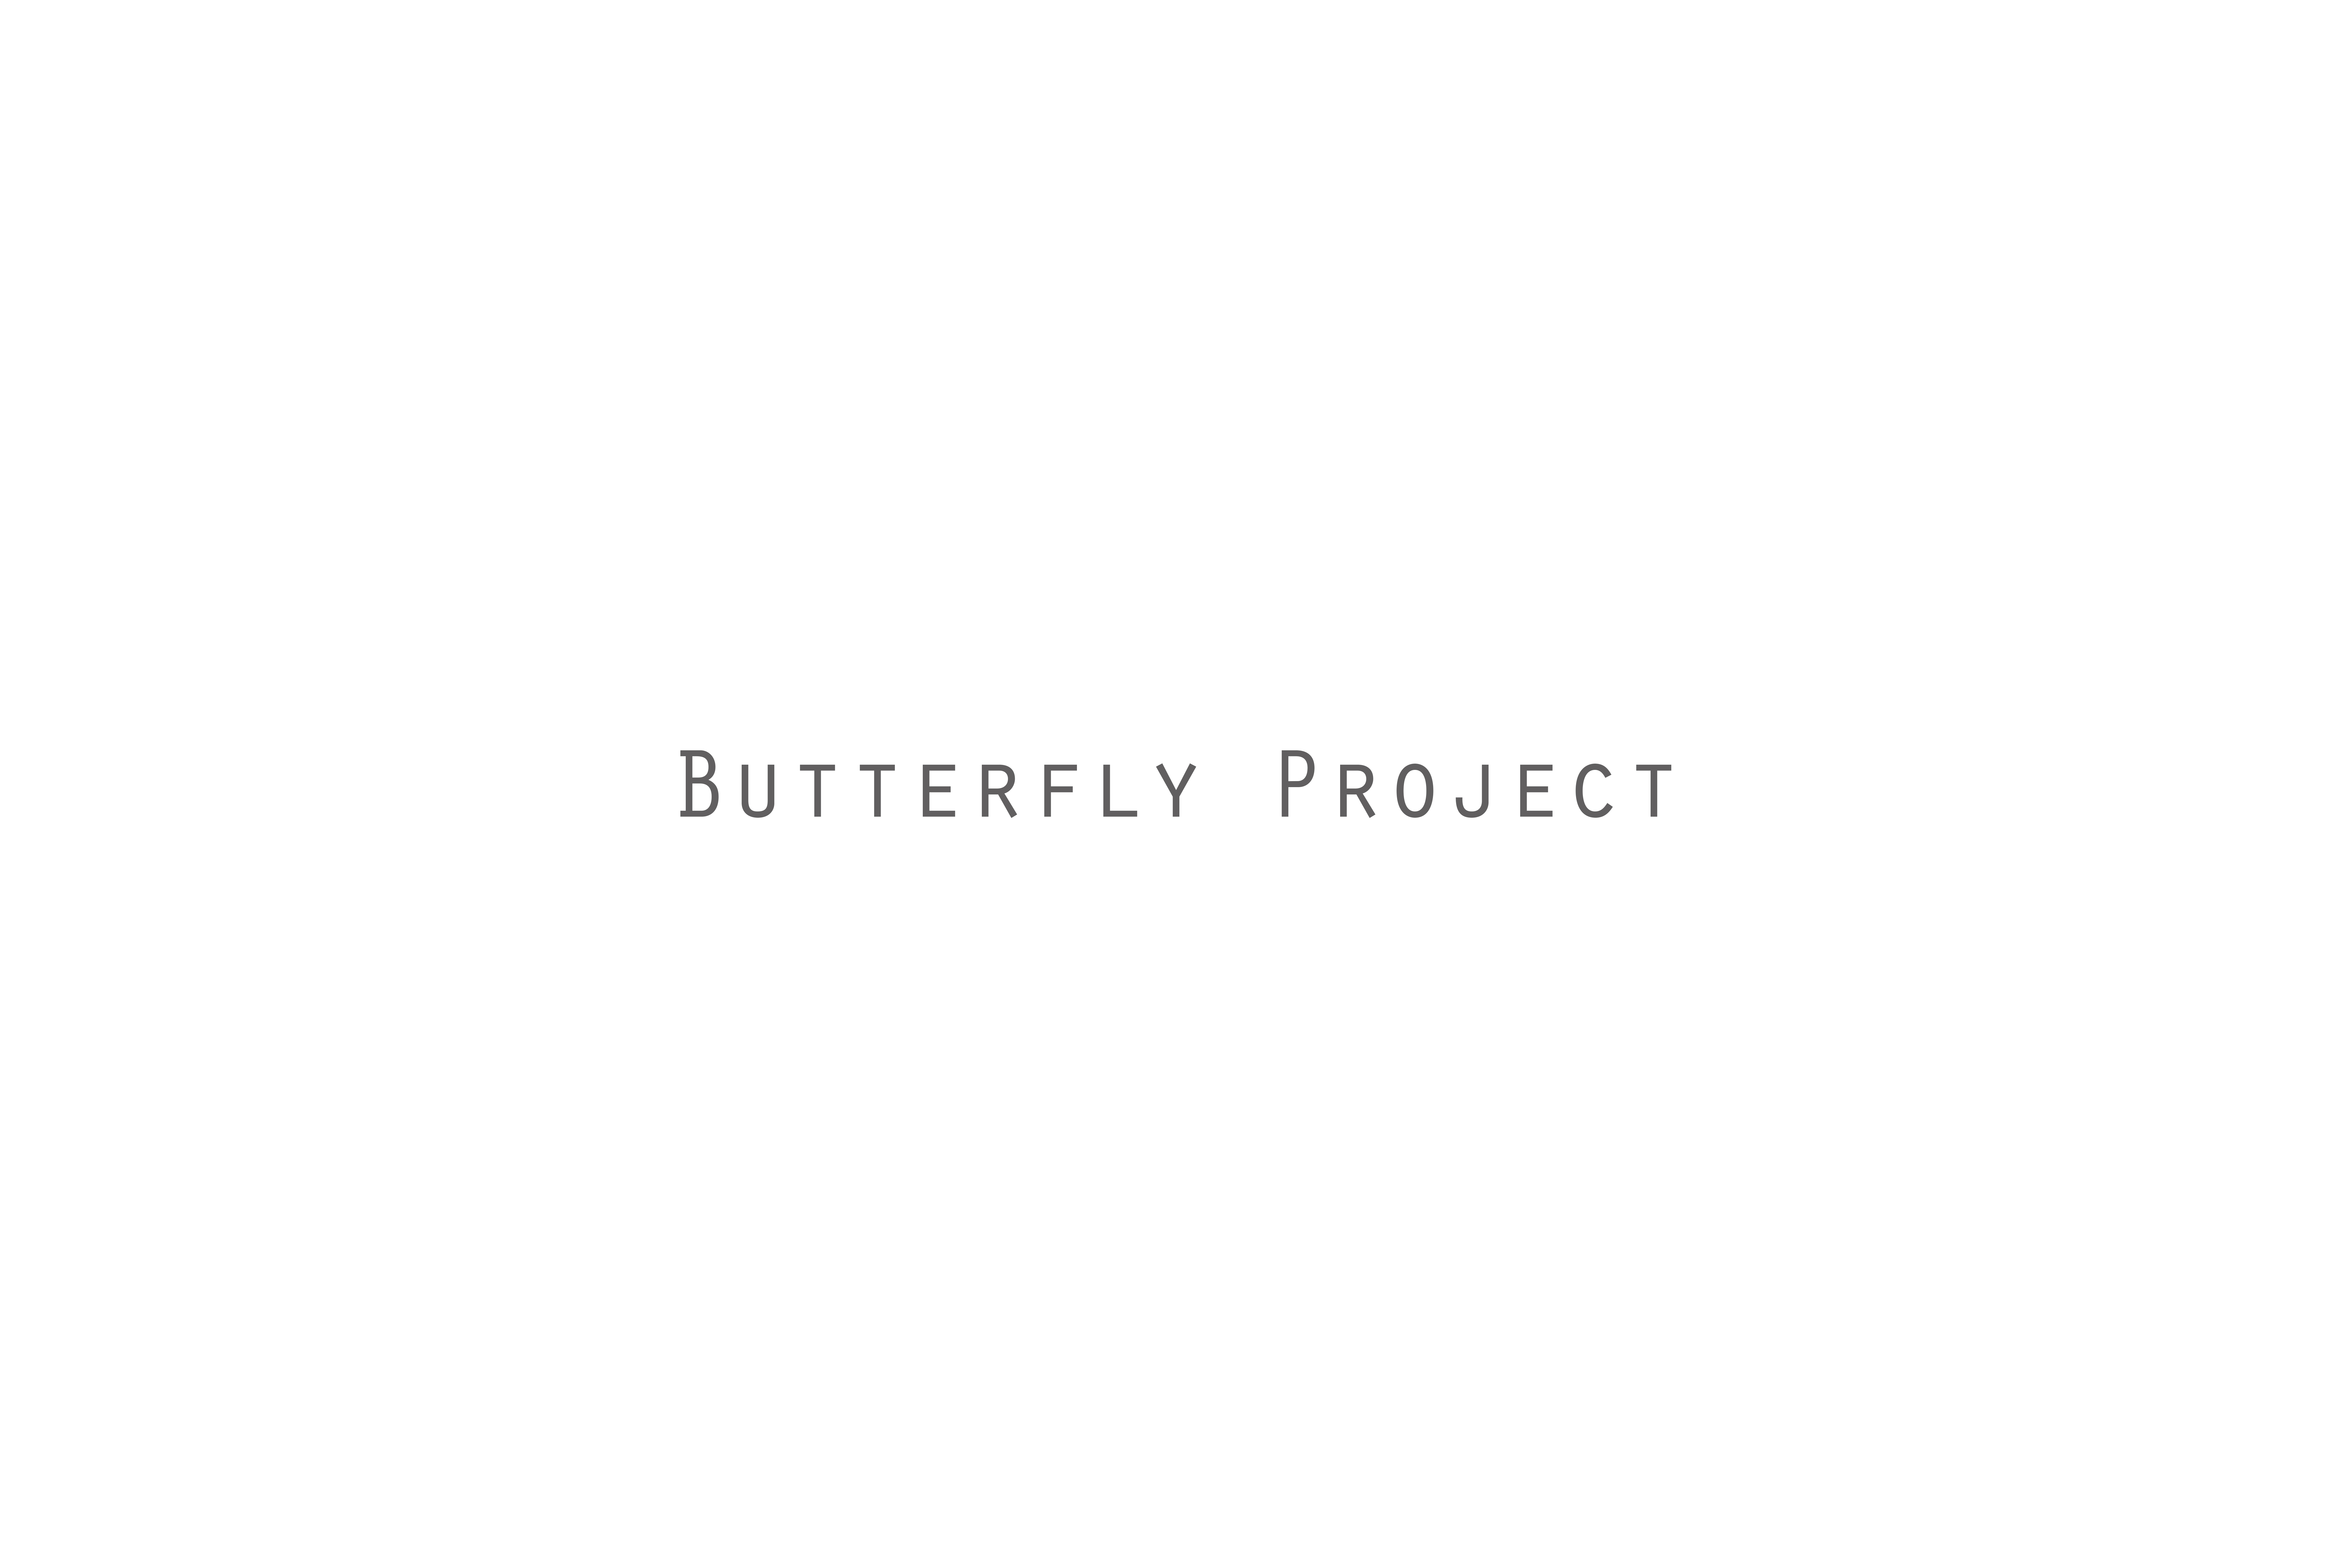 Butterfly Project